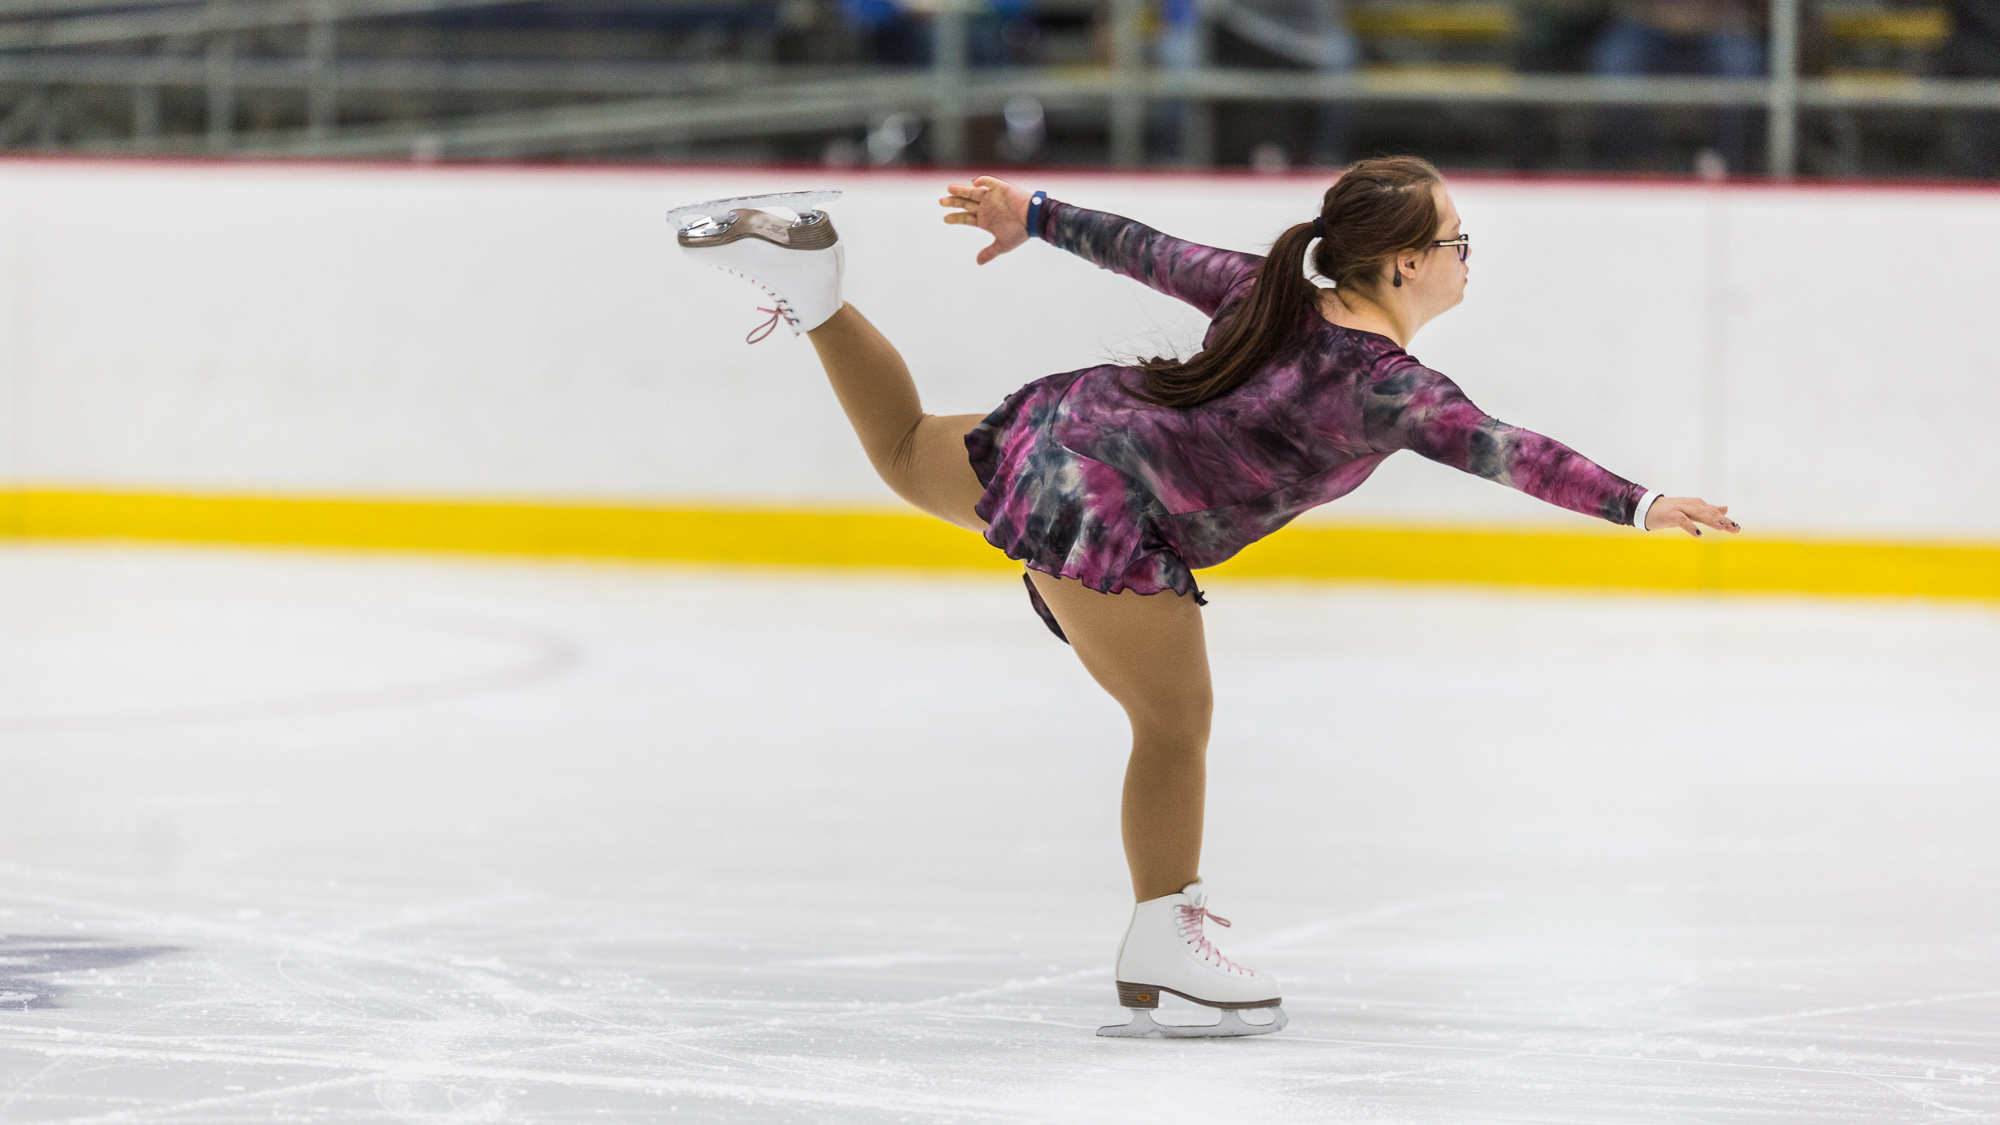 Lauren Marraffa performs during the figure skating competition. Sports photography by Zoe Smith.